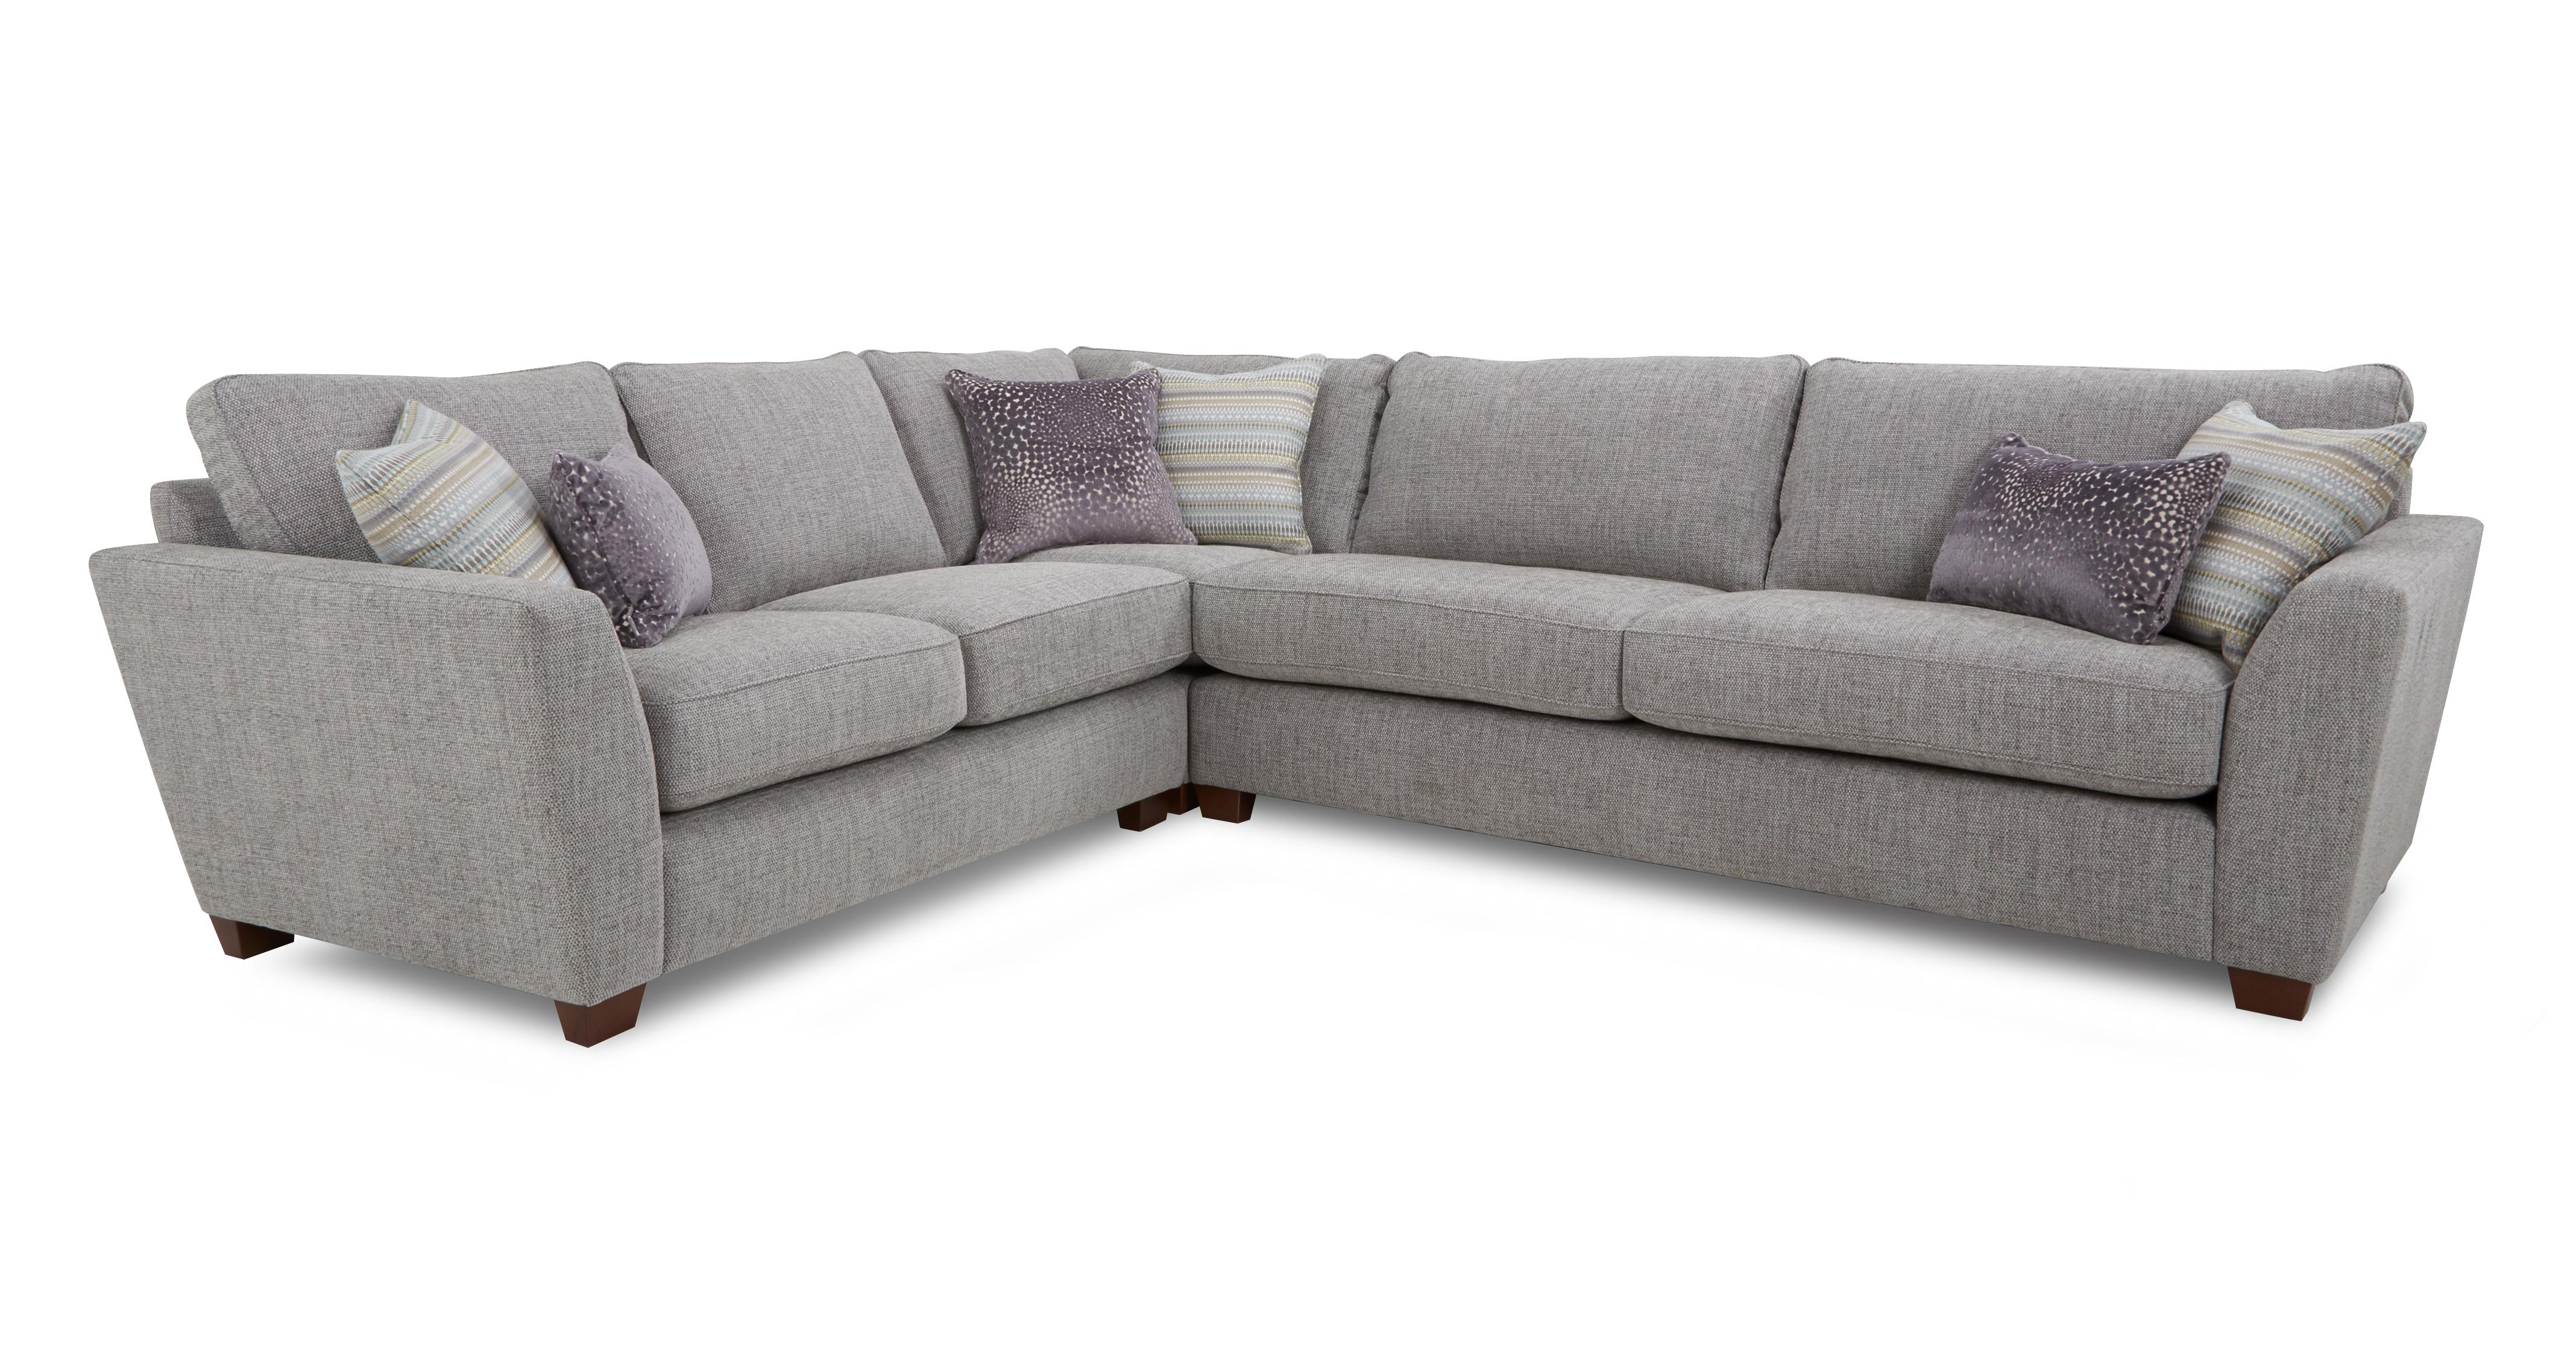 corner sofa dfs martinez deco ruang tamu fabric bed sofas in a